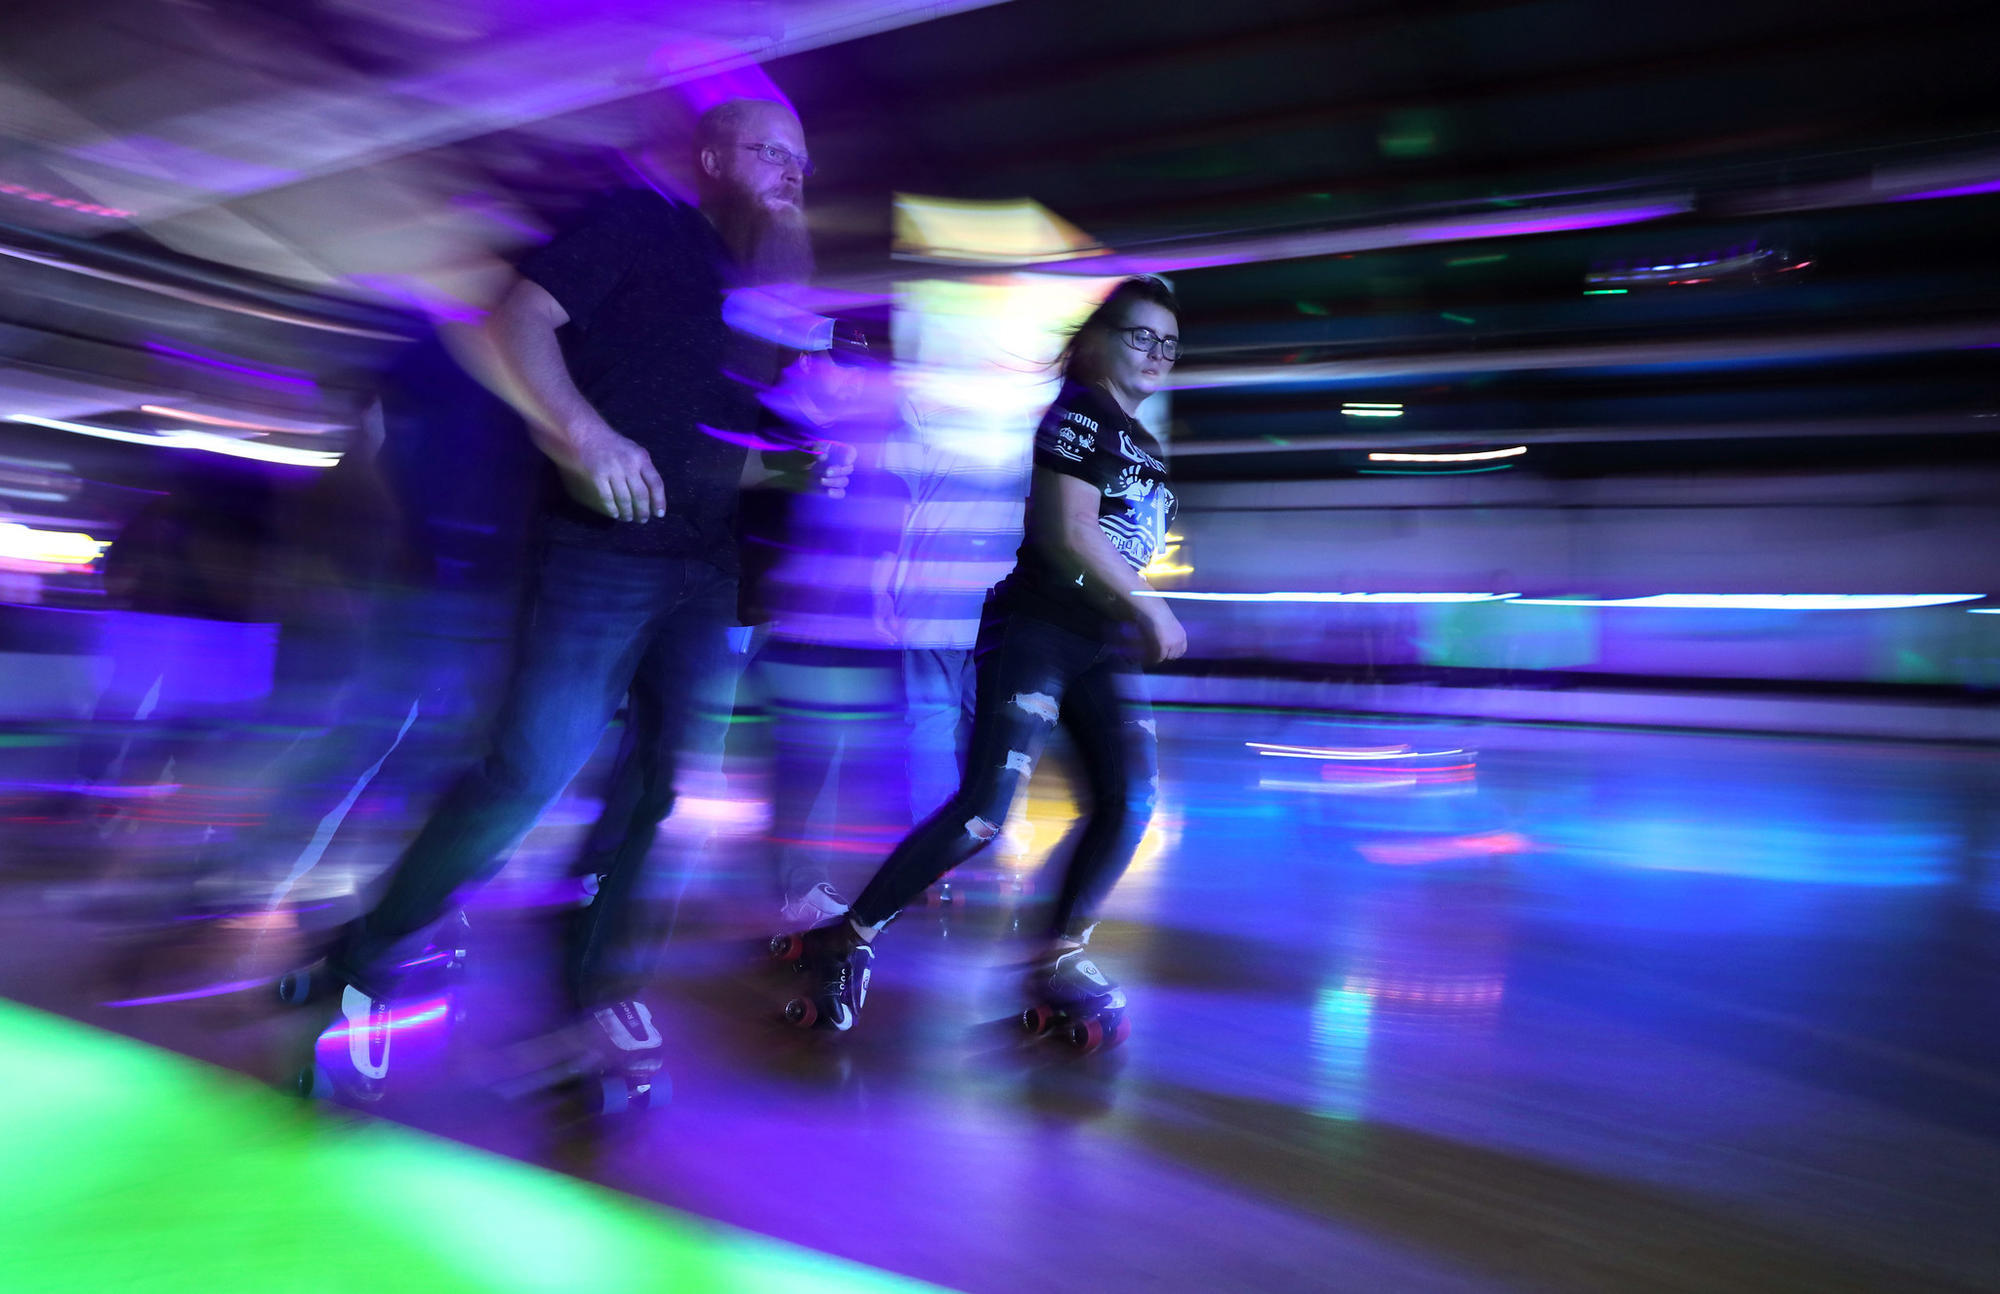 Palatines Orbit Skate Center  and its universe of